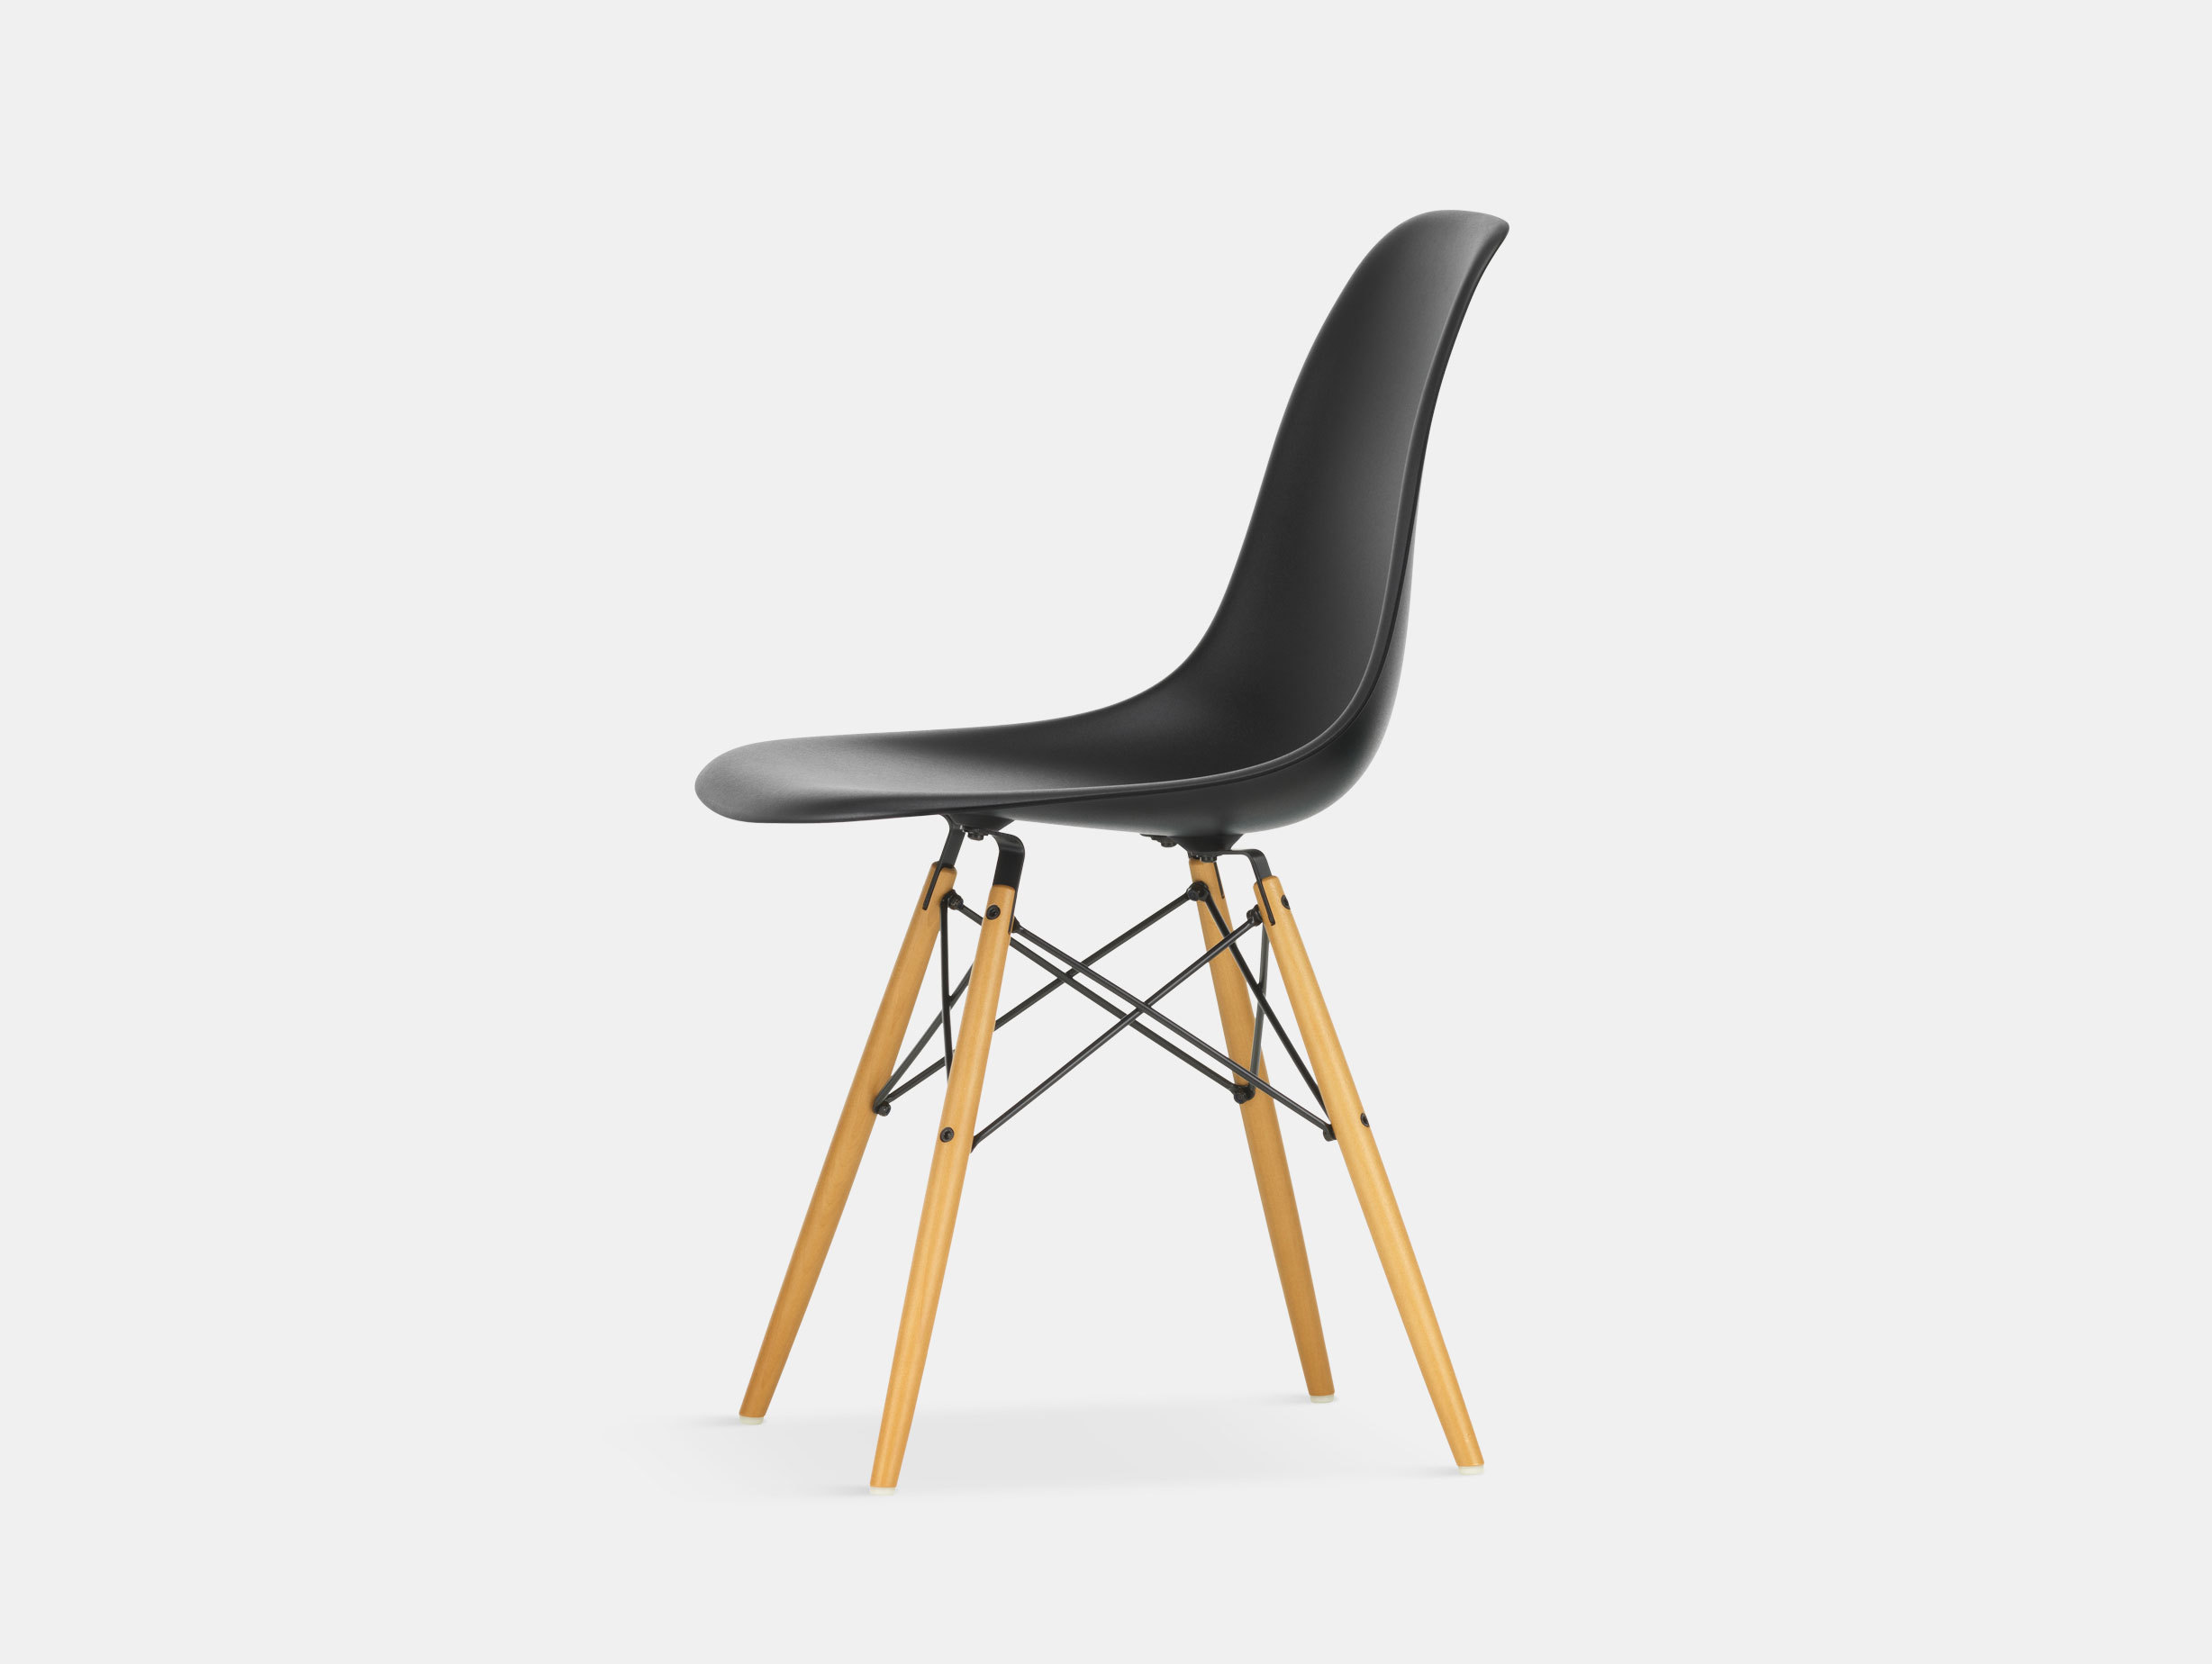 Vitra Eames DSW Plastic Side Chair deep black golden maple legs